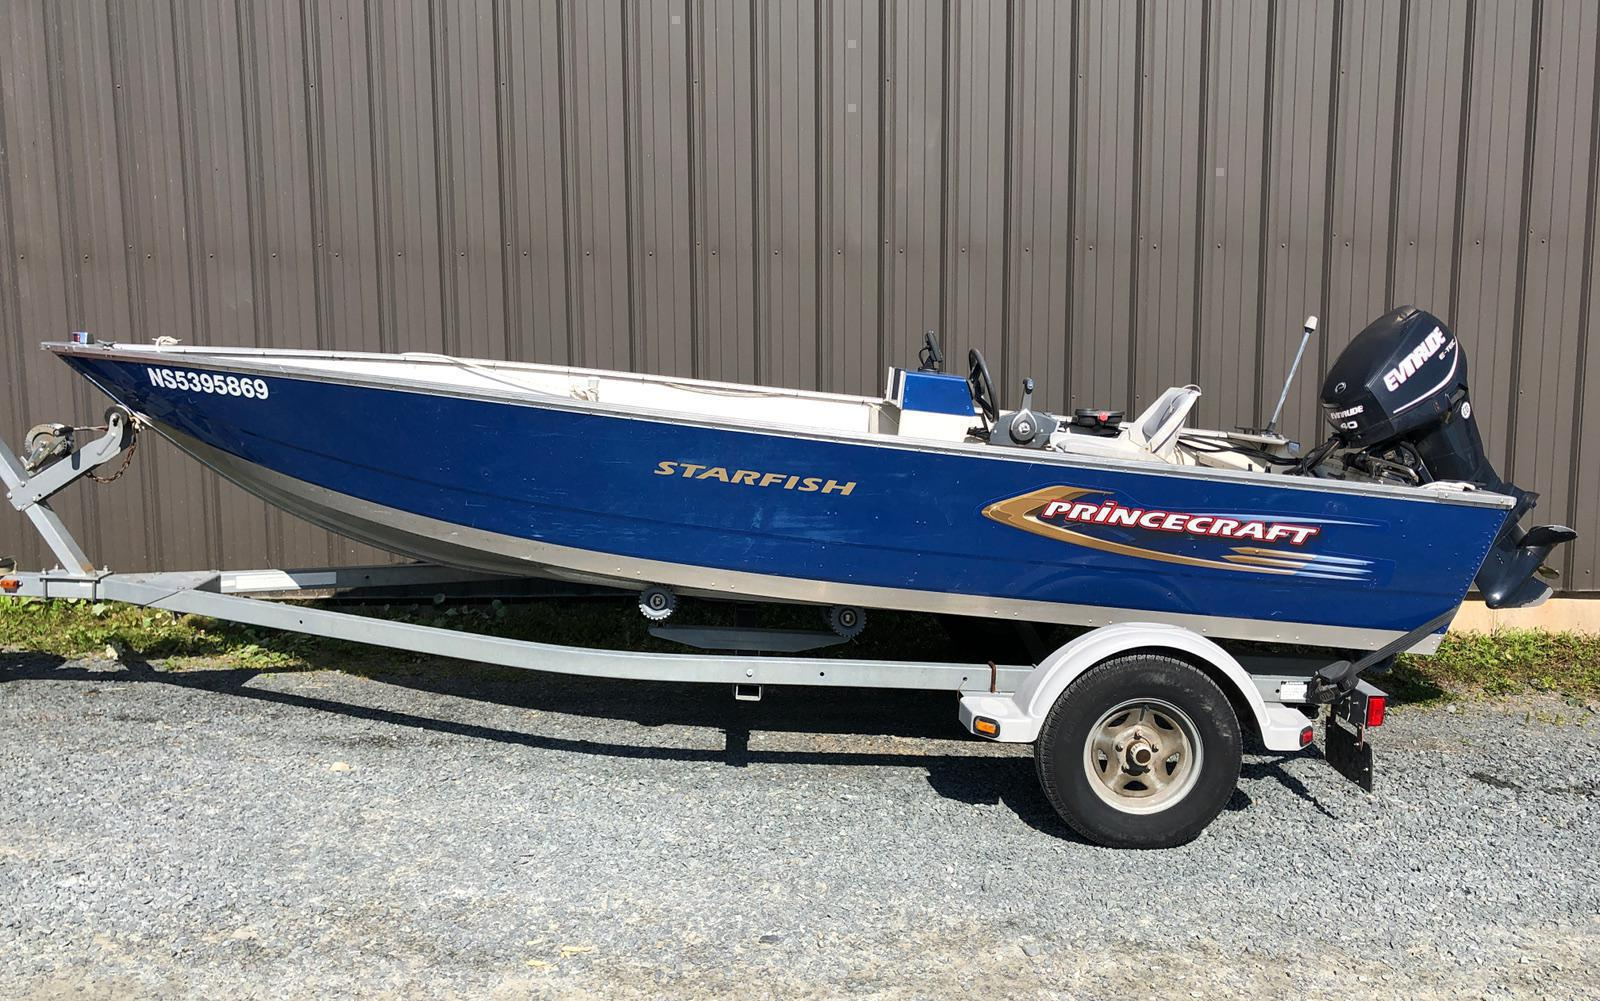 Inventory from Princecraft White Water Marine Middle